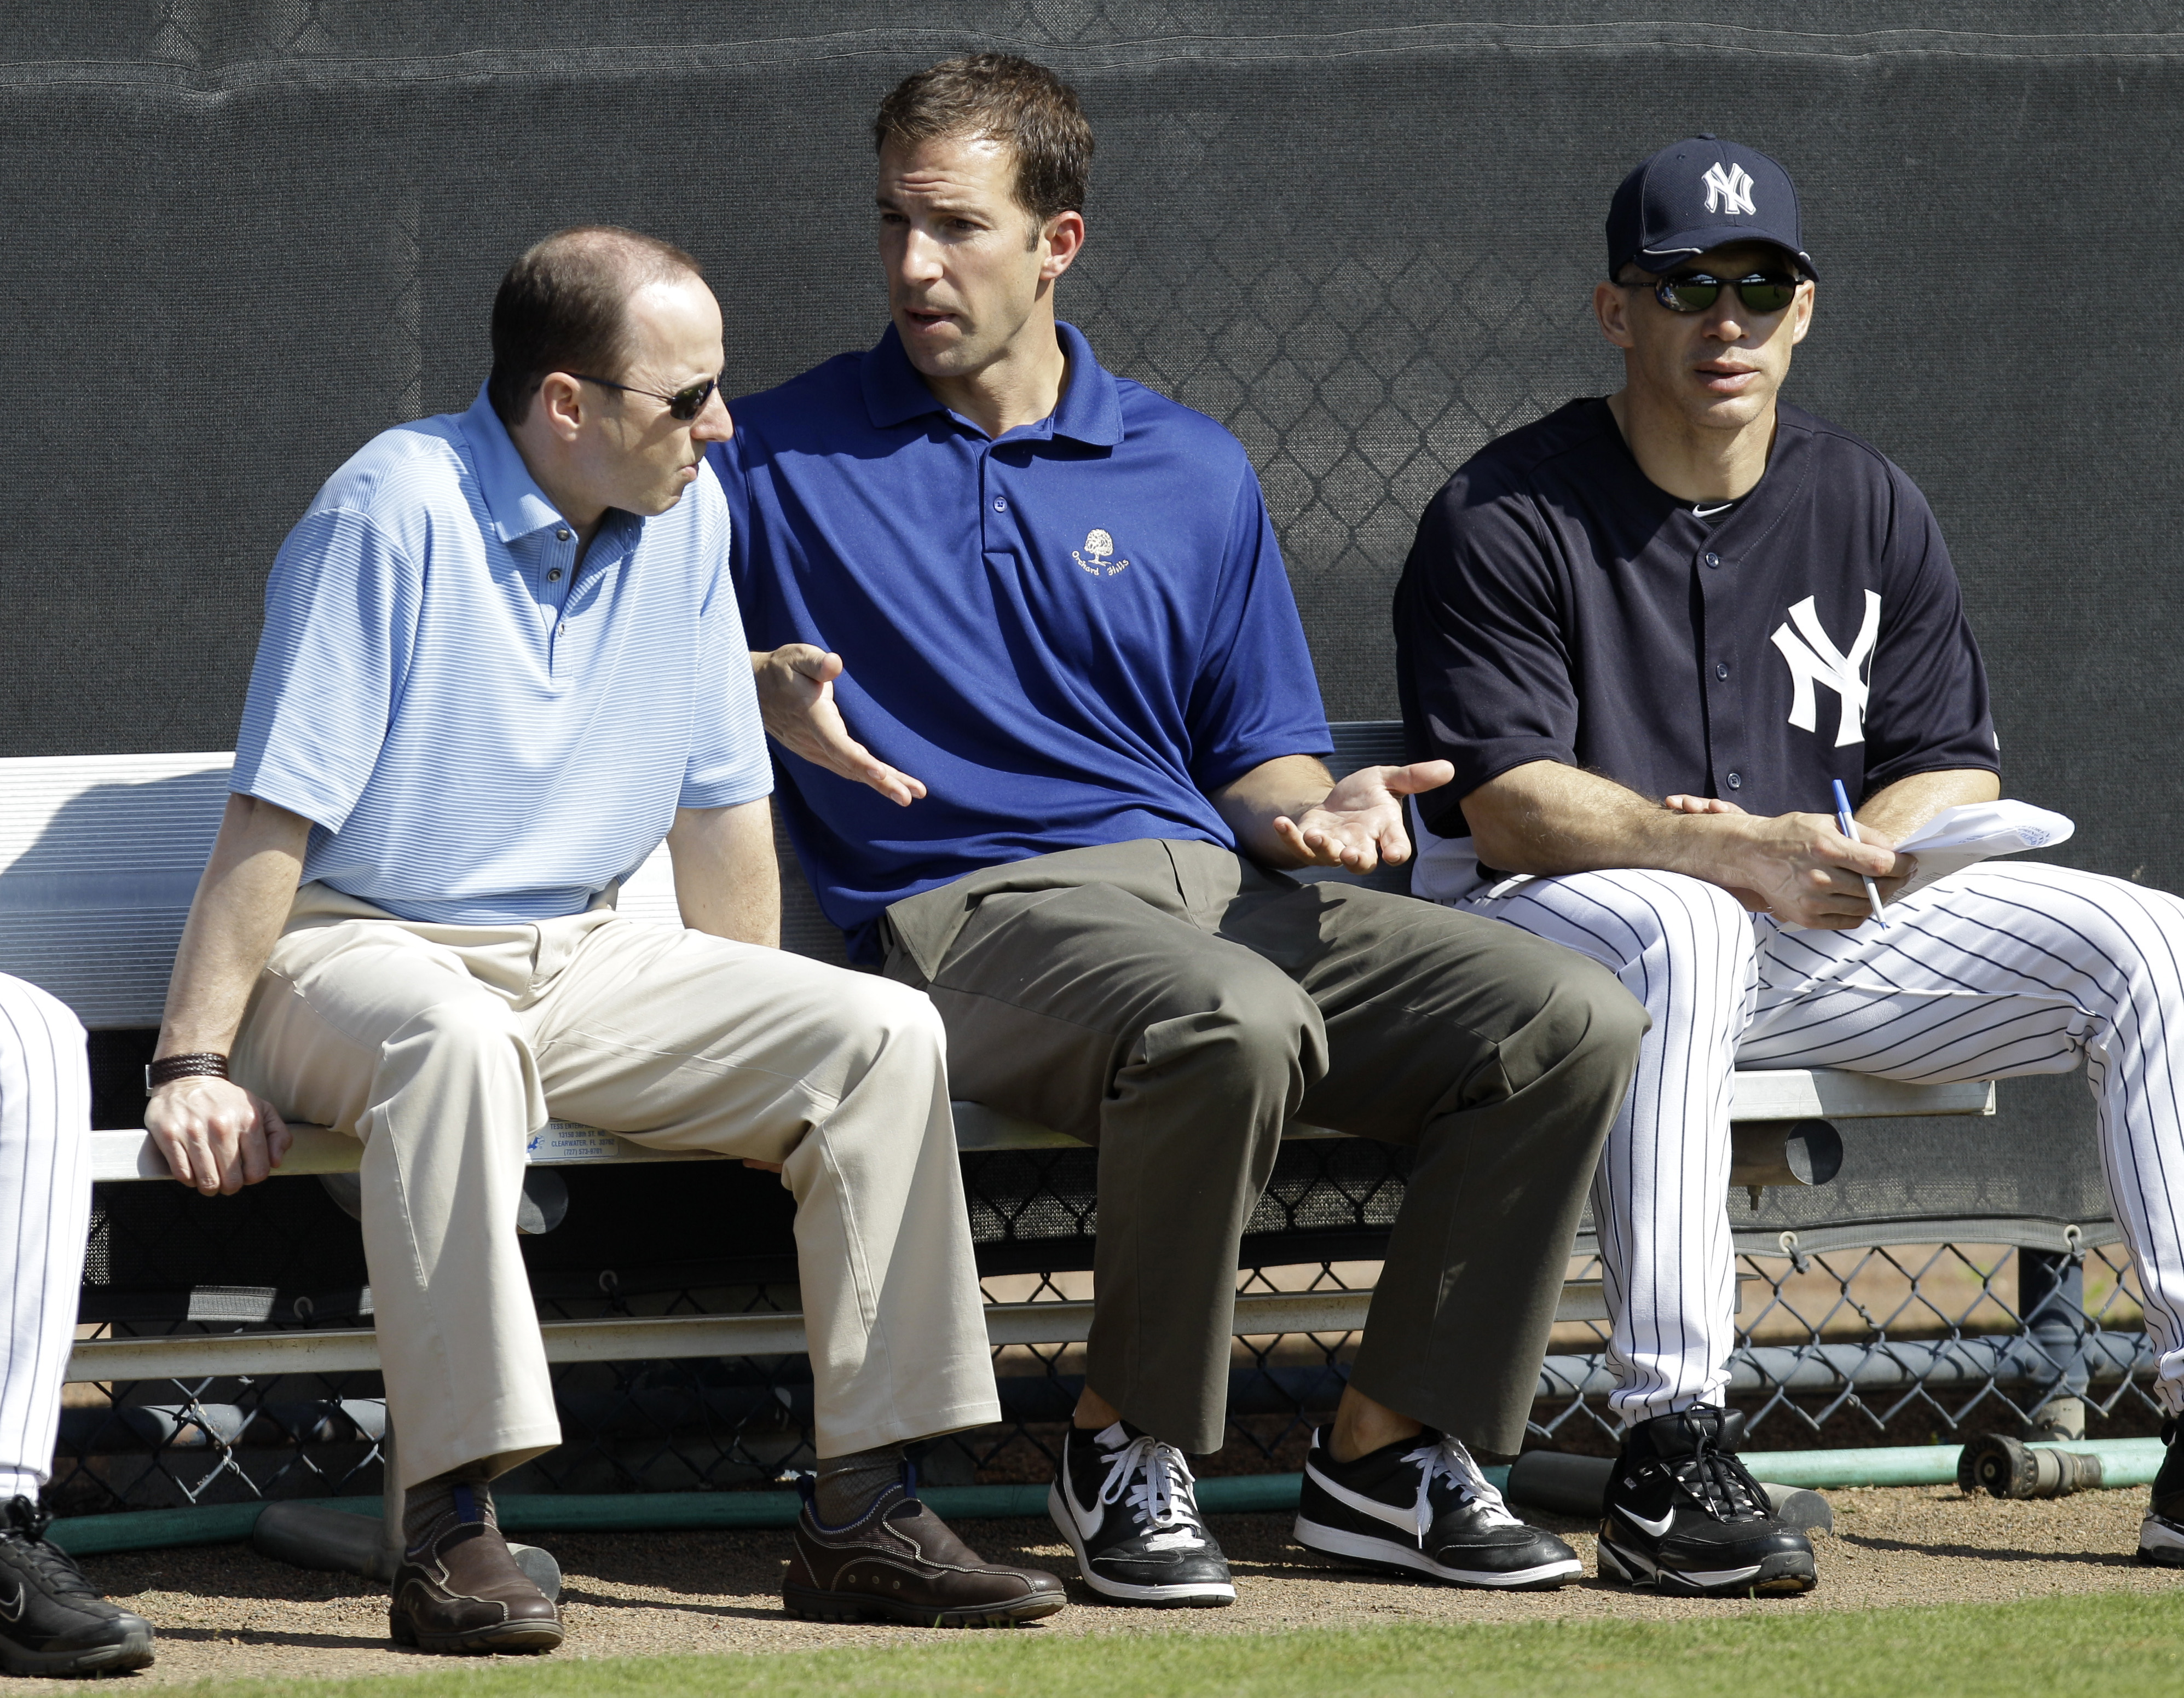 New York Yankees General Manager Brian Cashman, left, Director of Professional Scouting Billy Eppler, center, and manager Joe Girardi sit in the bullpen during a baseball spring training workout Wednesday, Feb. 16, 2011, at Steinbrenner Field in Tampa, Fl